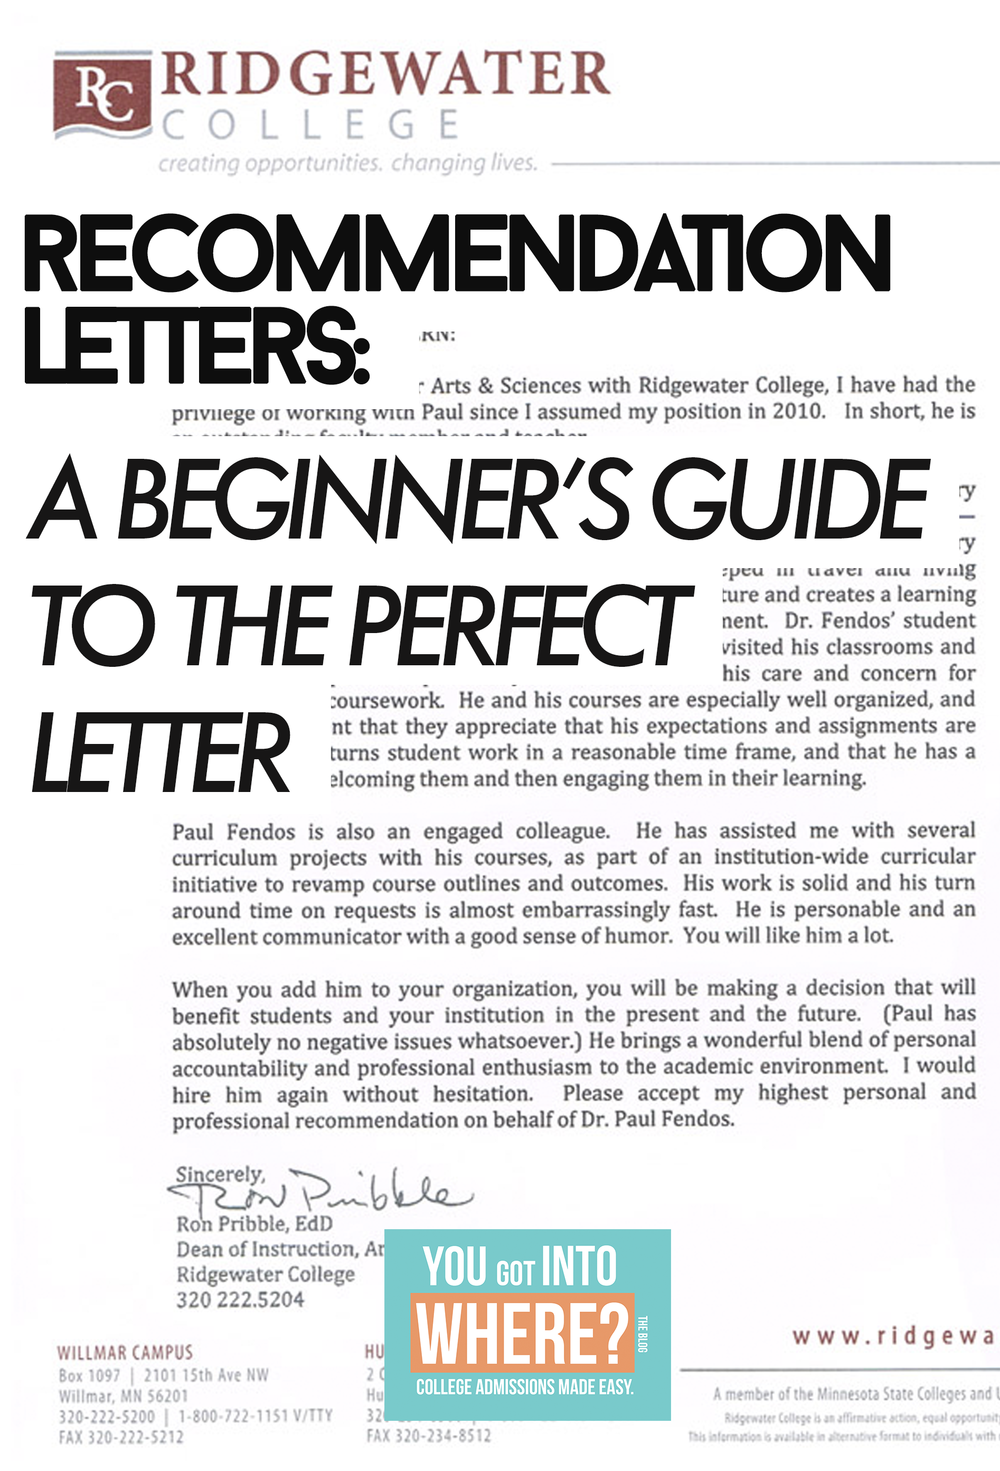 Teacher Recommendation Guide To The Perfect Letter.png